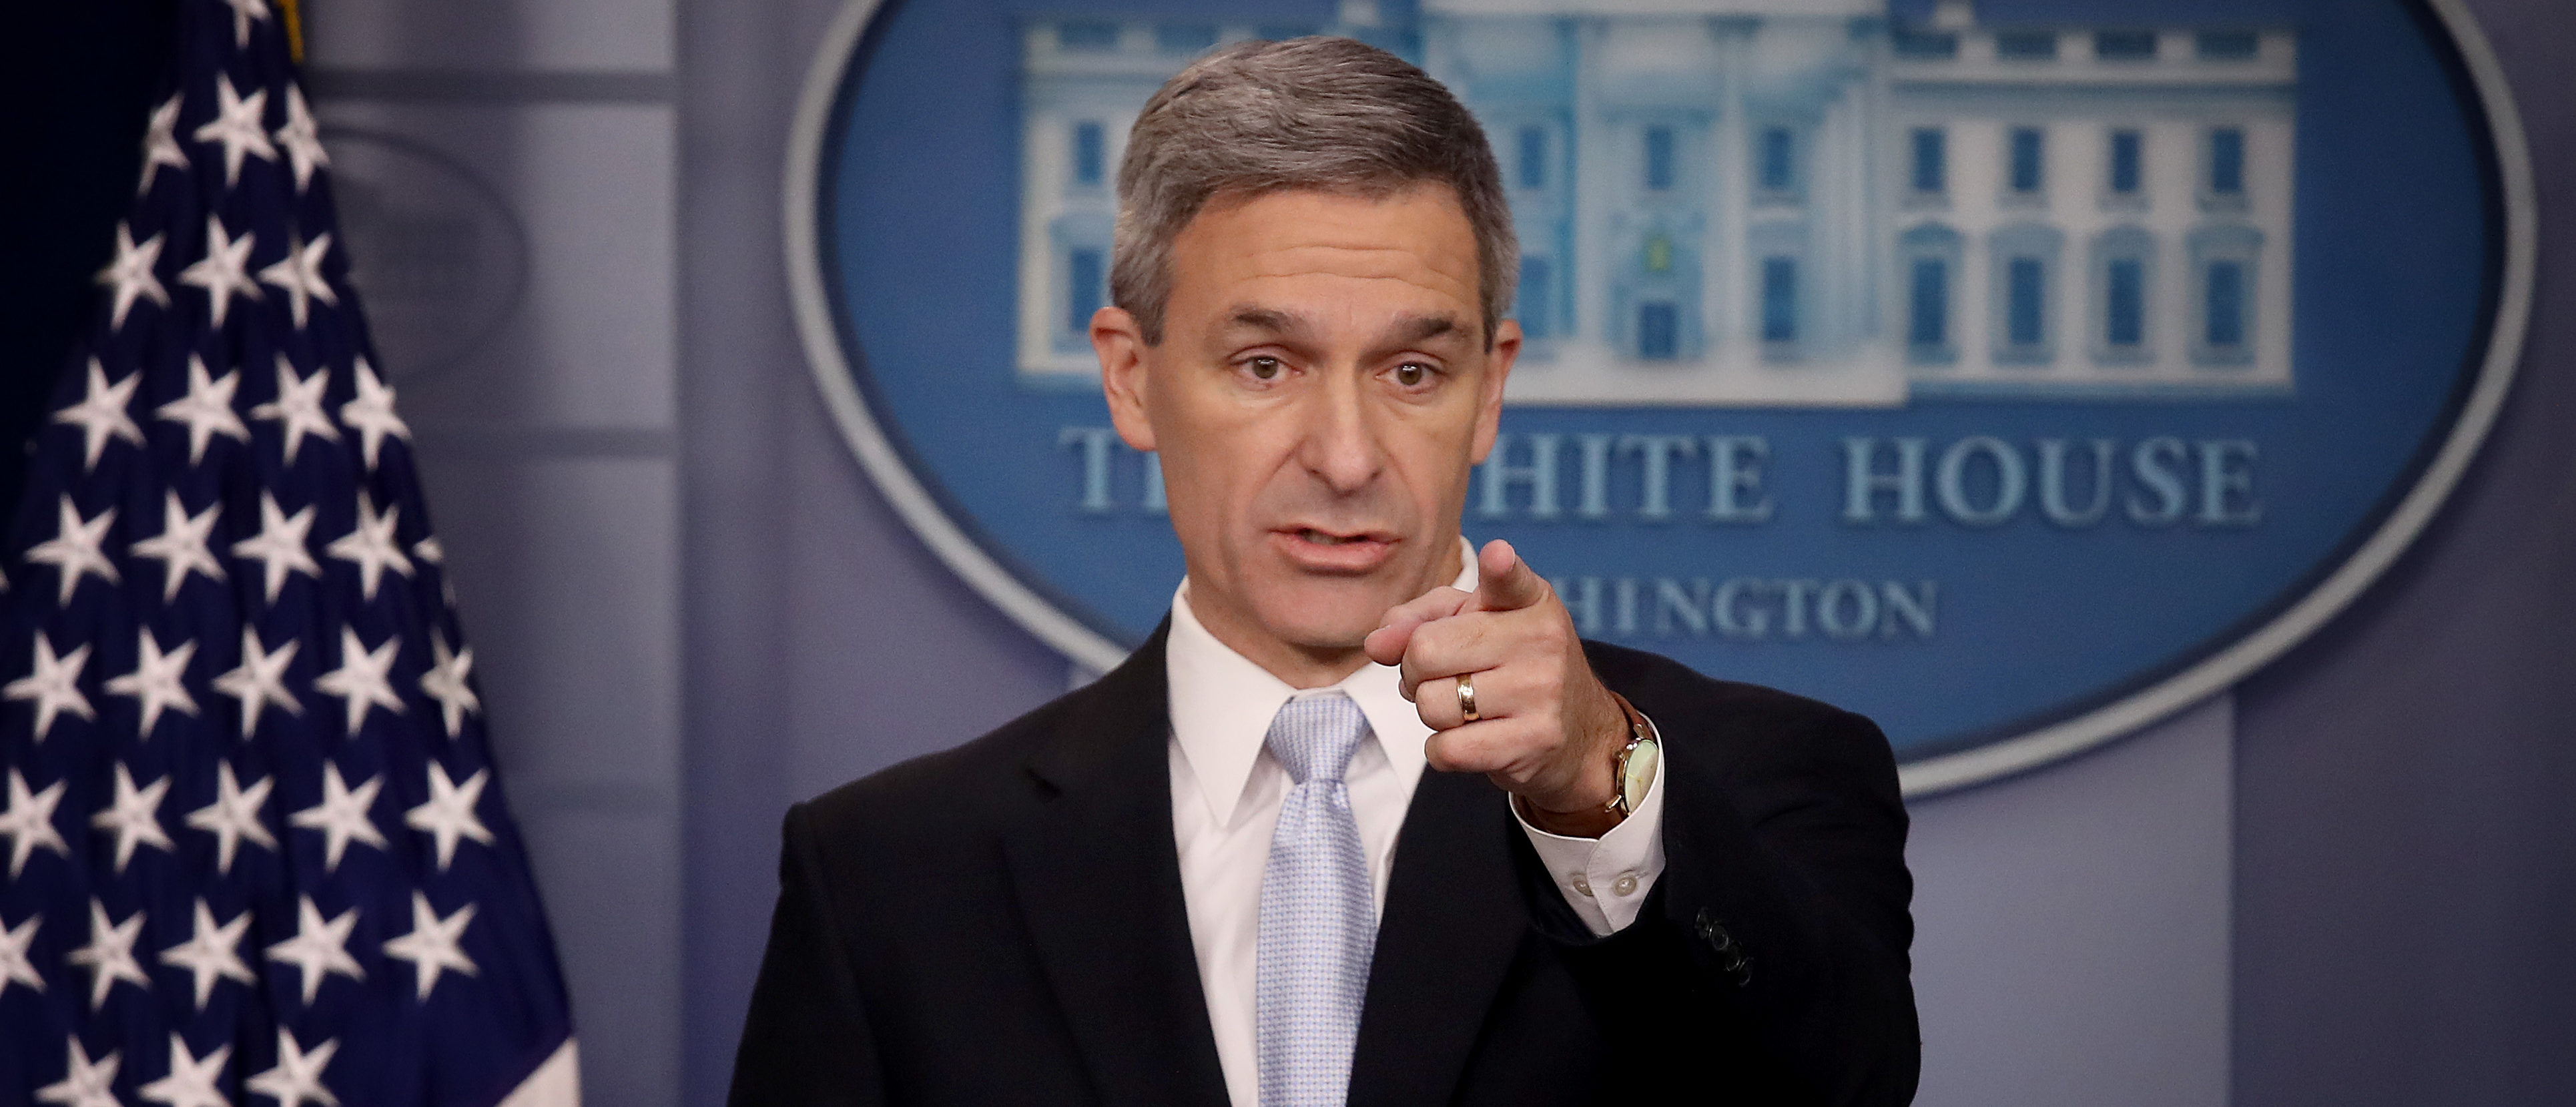 Conservative Leaders Push Trump To Choose Ken Cuccinelli To Lead DHS